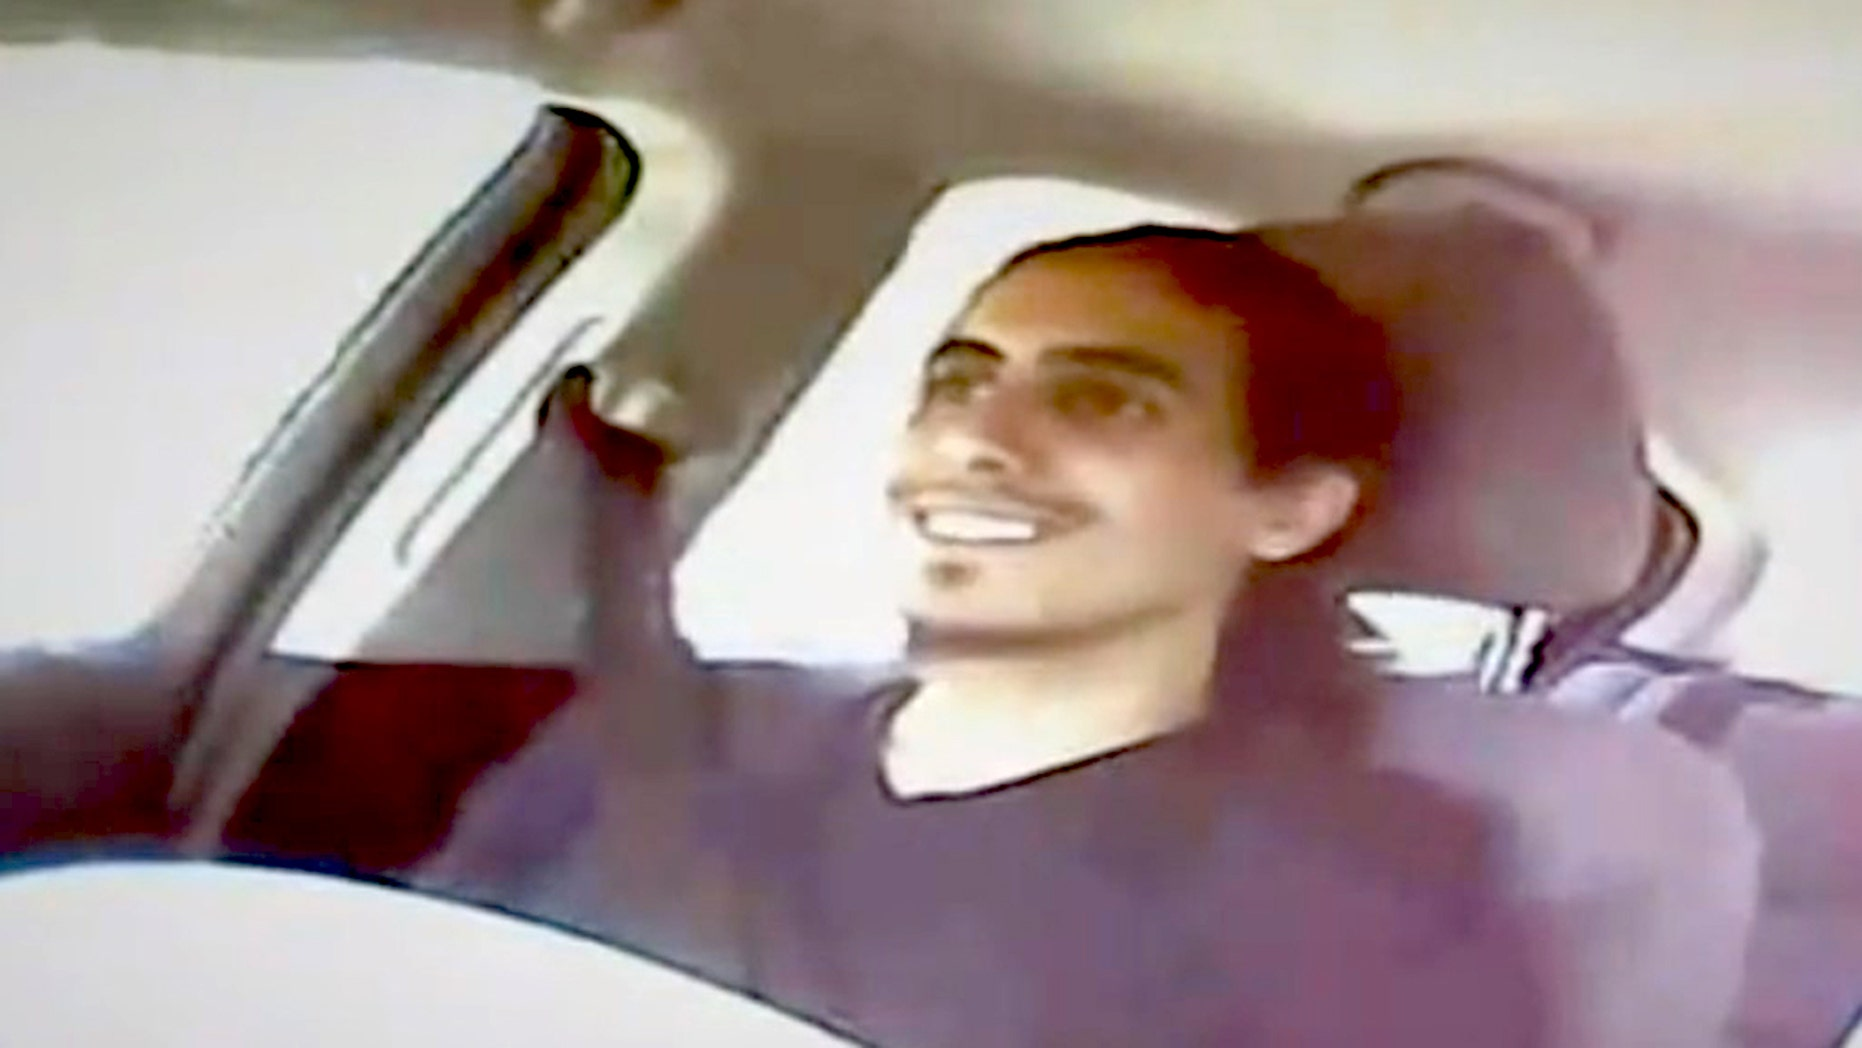 A screen capture shows defendant Amer Alhaggagi riding with an undercover FBI agent. (U.S. Attorney's Office/FBI via KQED and KTVU/Brooks Jarosz)